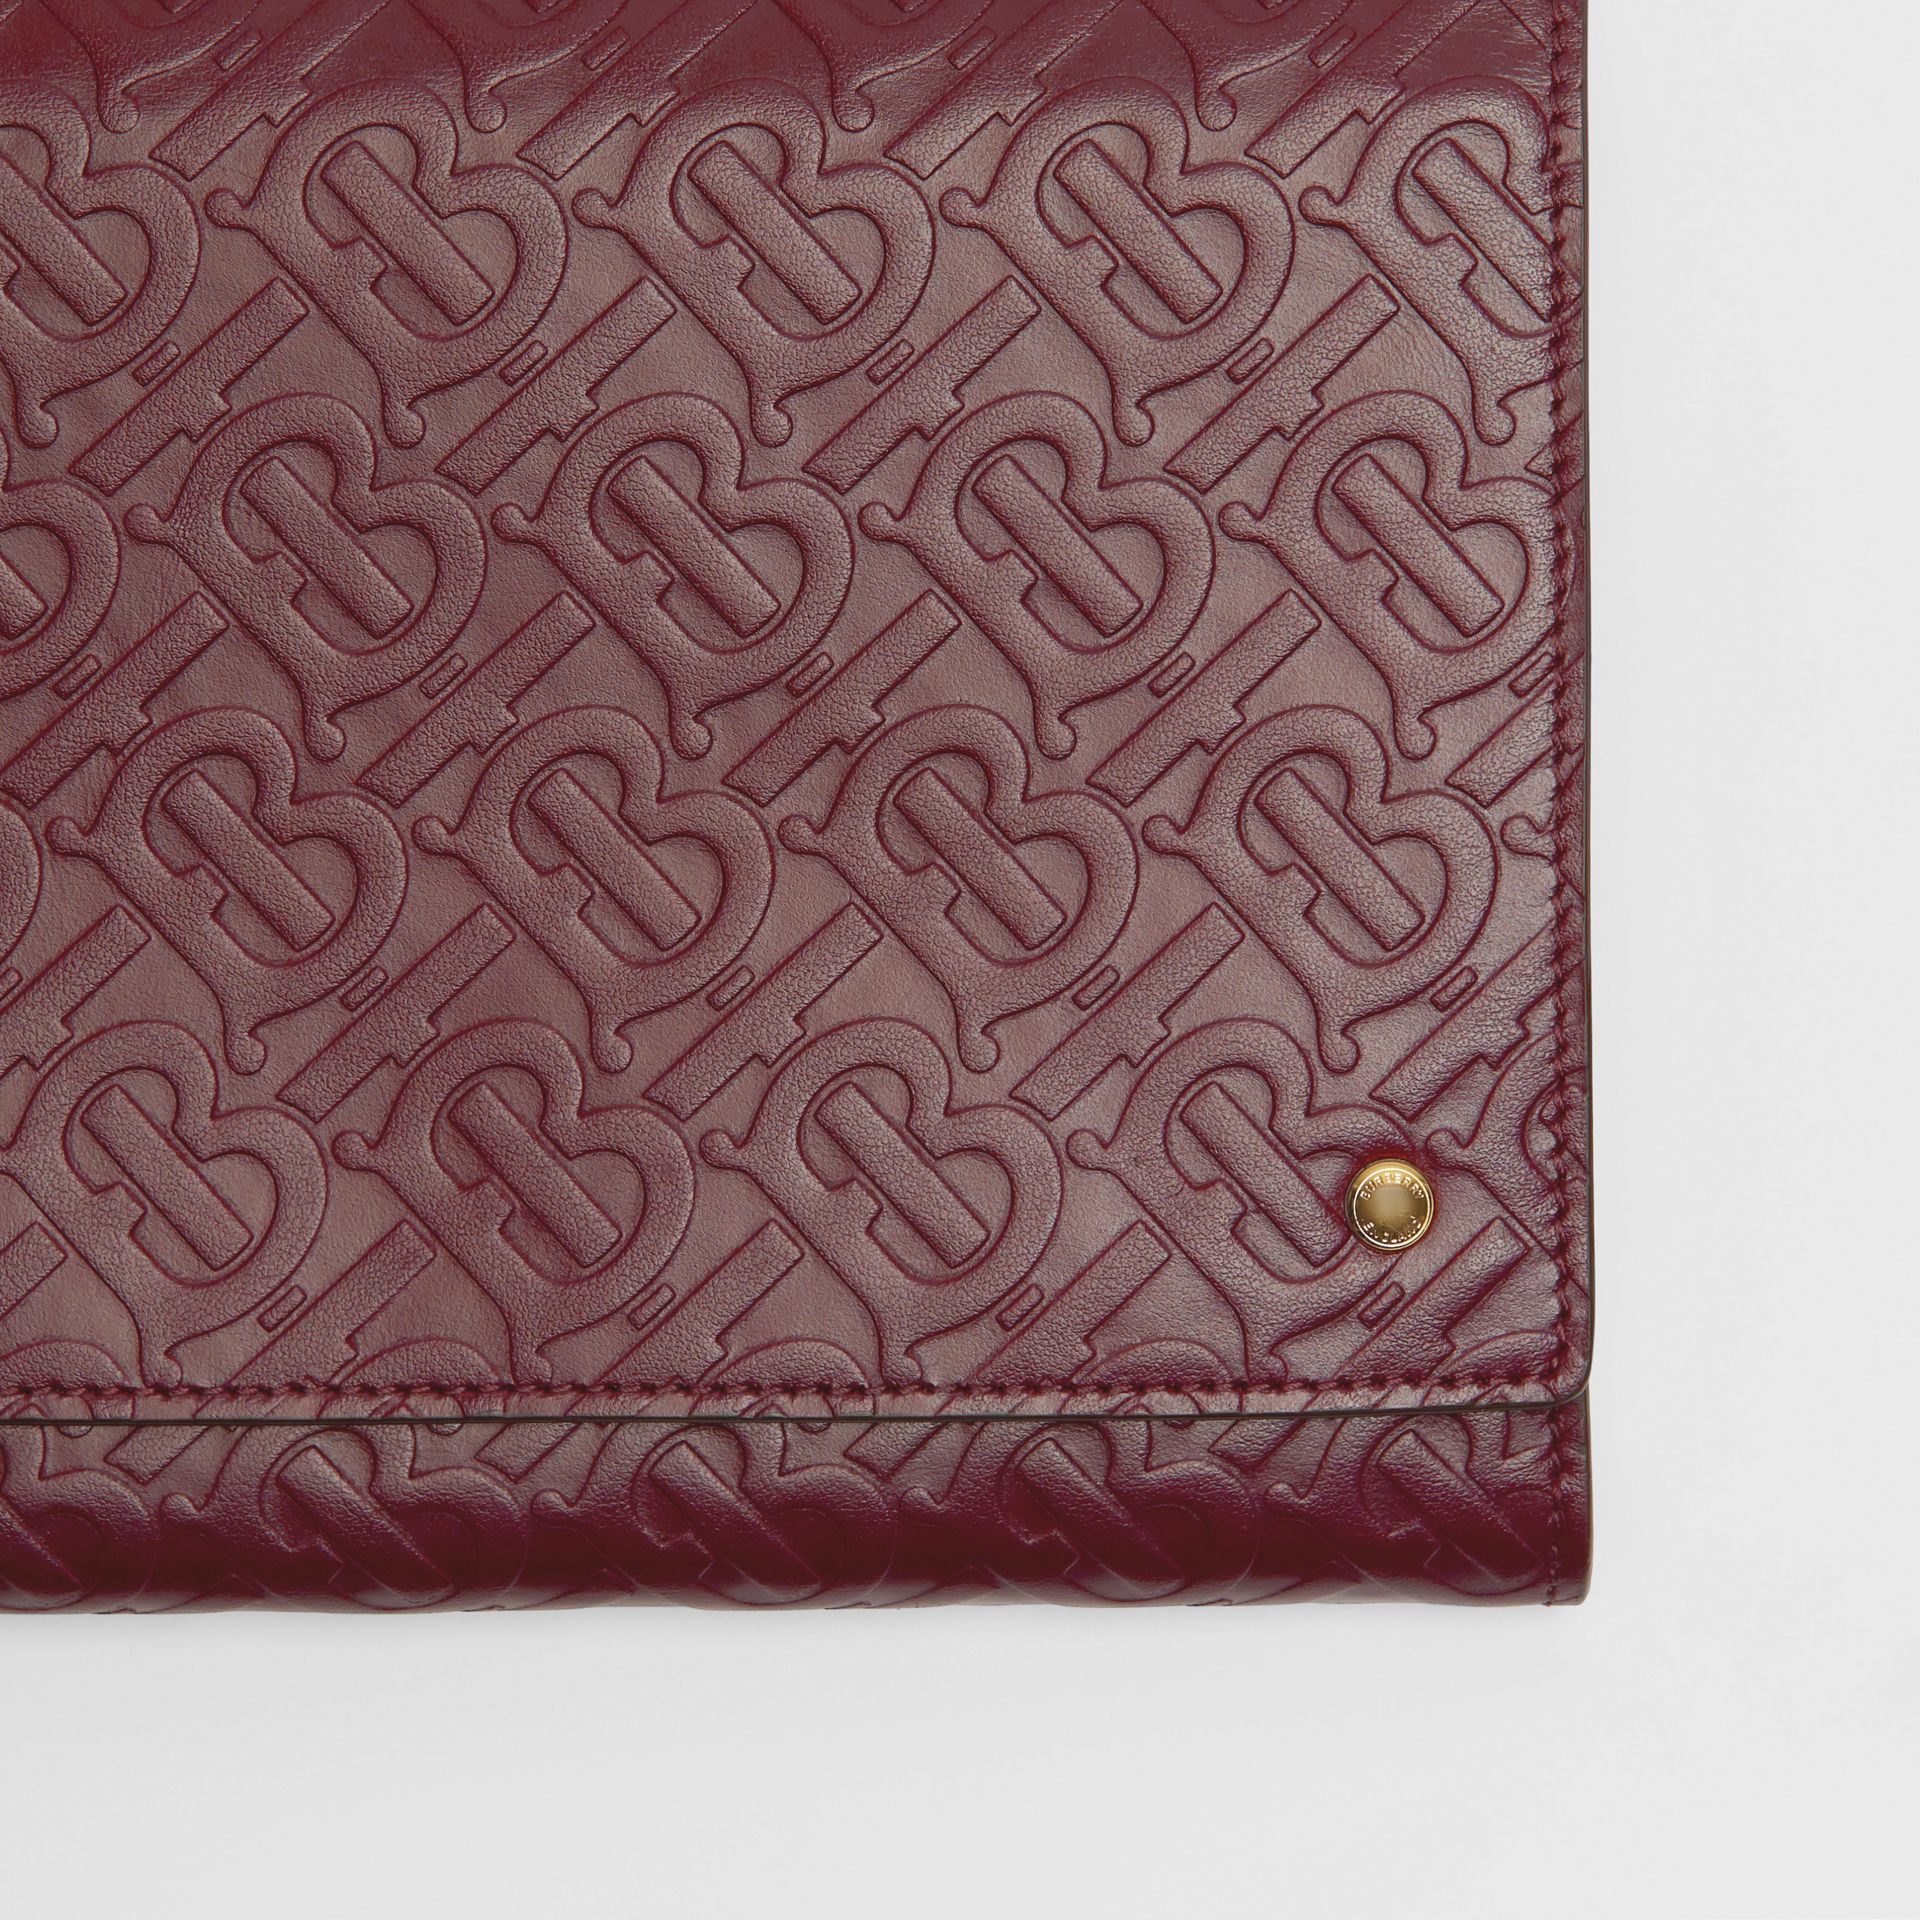 Monogram Leather Bag with Detachable Strap in Oxblood - Women | Burberry - gallery image 1